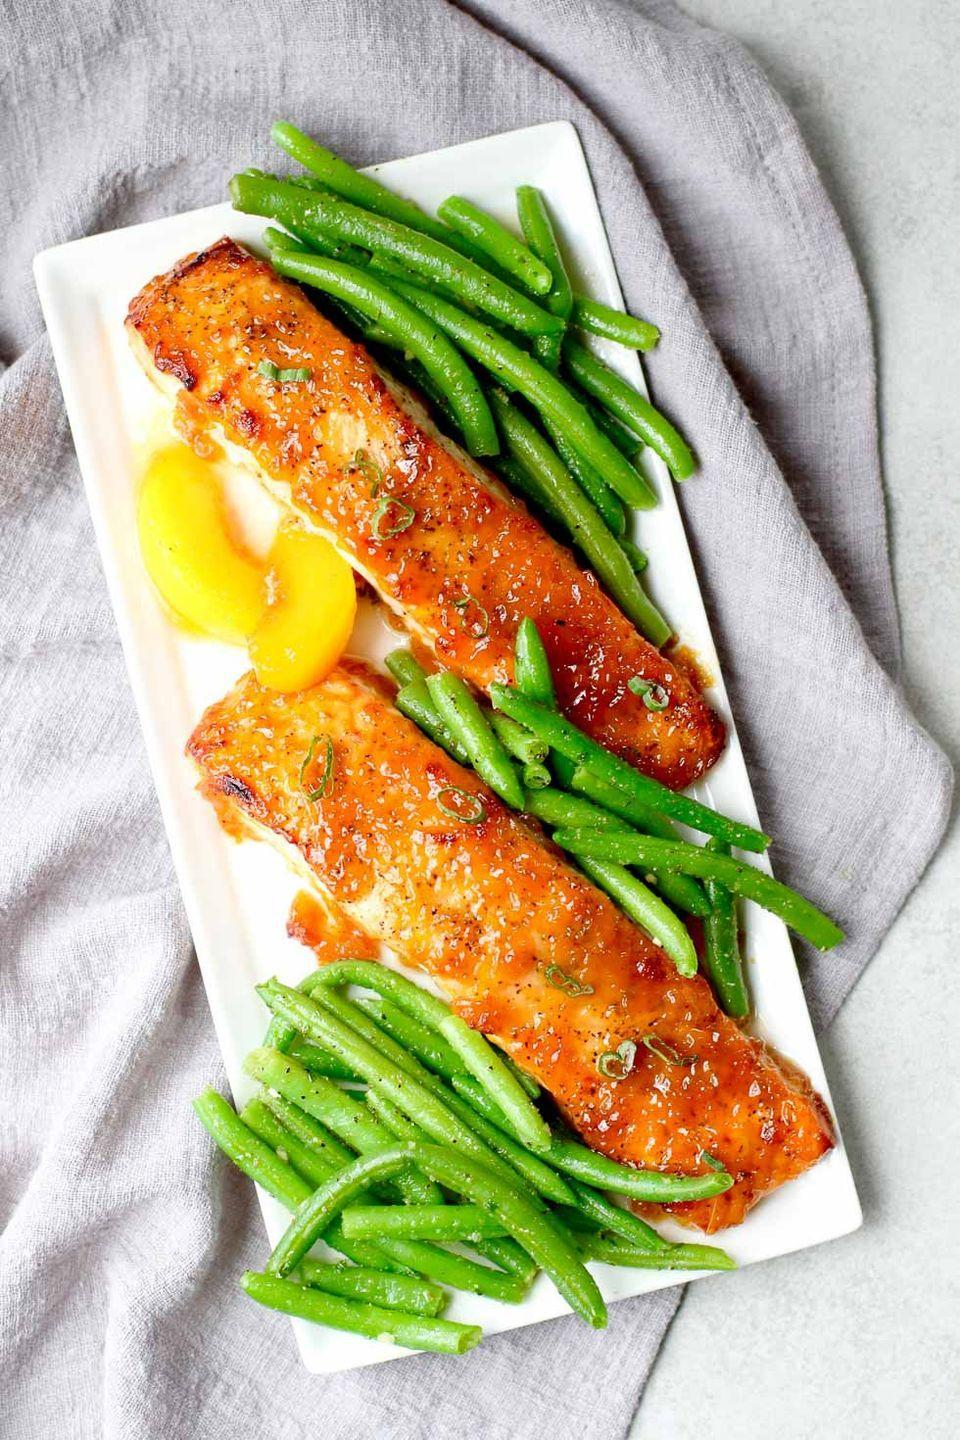 """<p>This light, fast salmon dinner for two goes from weeknight-worthy to """"<em>wow</em> what's in that?"""" thanks to a deliciously sweet peach glaze.</p><p><strong>Get the recipe at <a href=""""https://marisamoore.com/bourbon-peach-glazed-salmon-date-night-dinner/"""" rel=""""nofollow noopener"""" target=""""_blank"""" data-ylk=""""slk:Marisa Moore"""" class=""""link rapid-noclick-resp"""">Marisa Moore</a>.</strong></p>"""